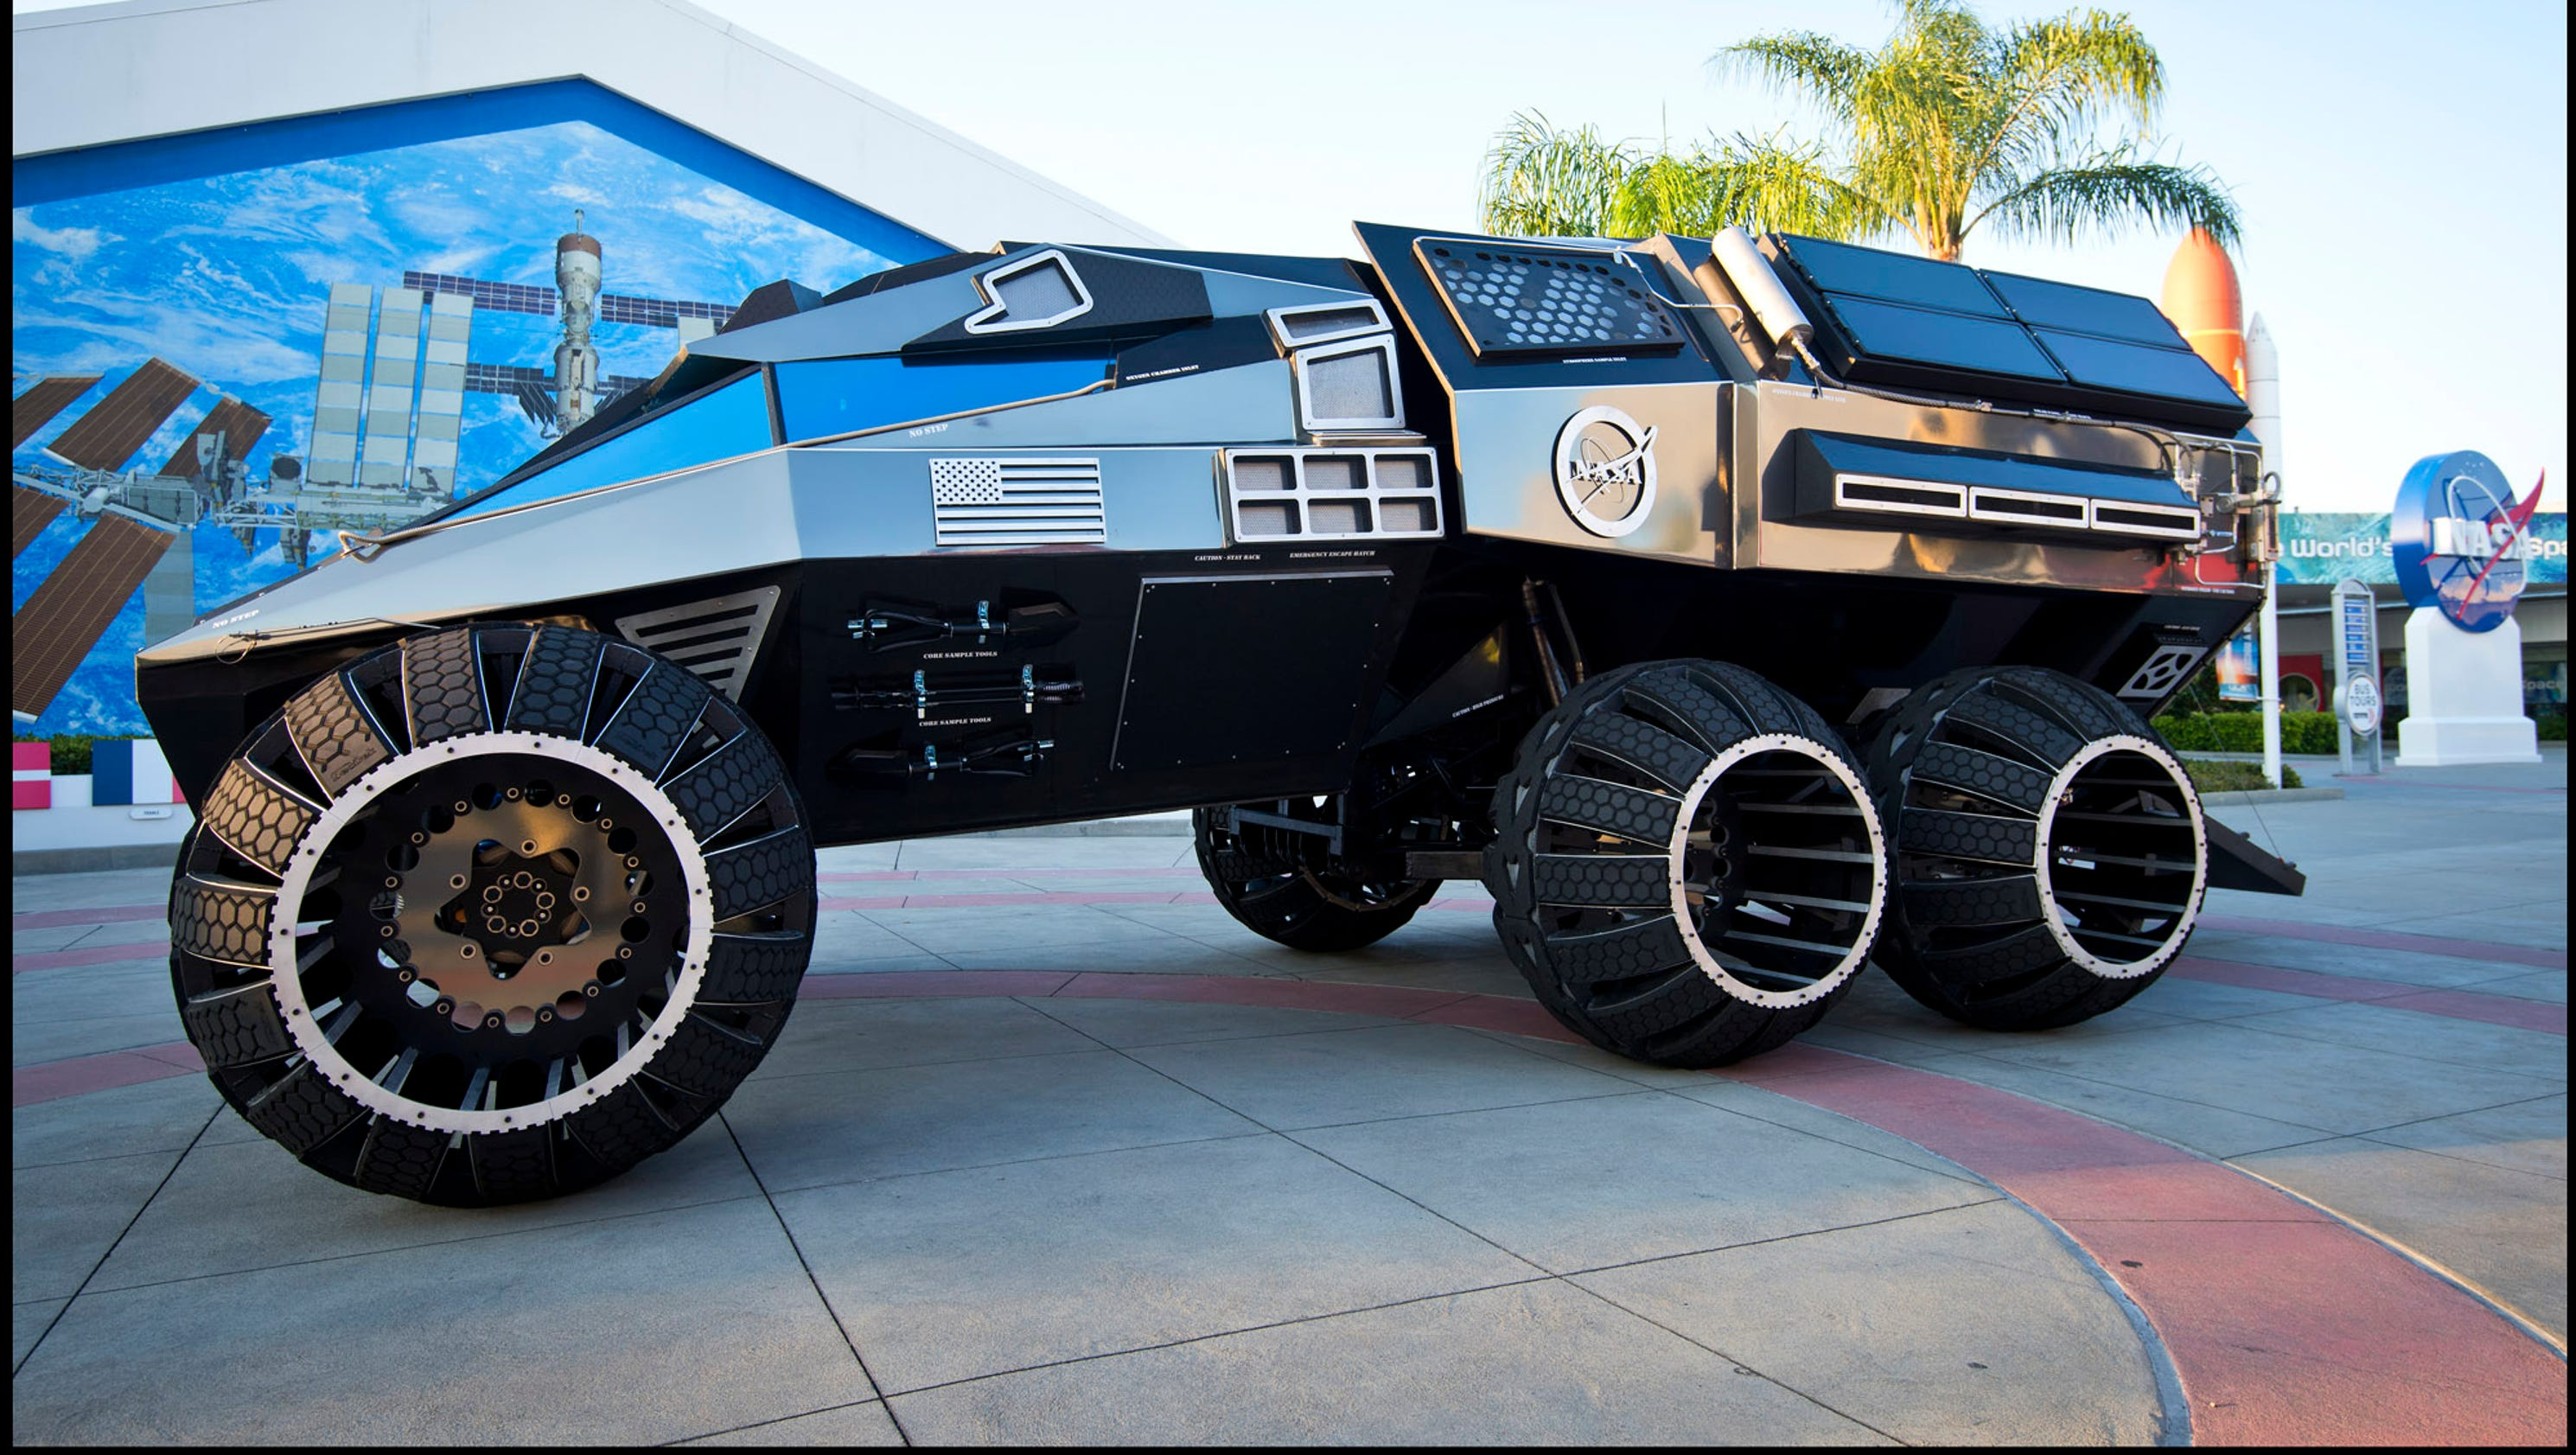 Mars Rover Concept Vehicle Tours The Usa